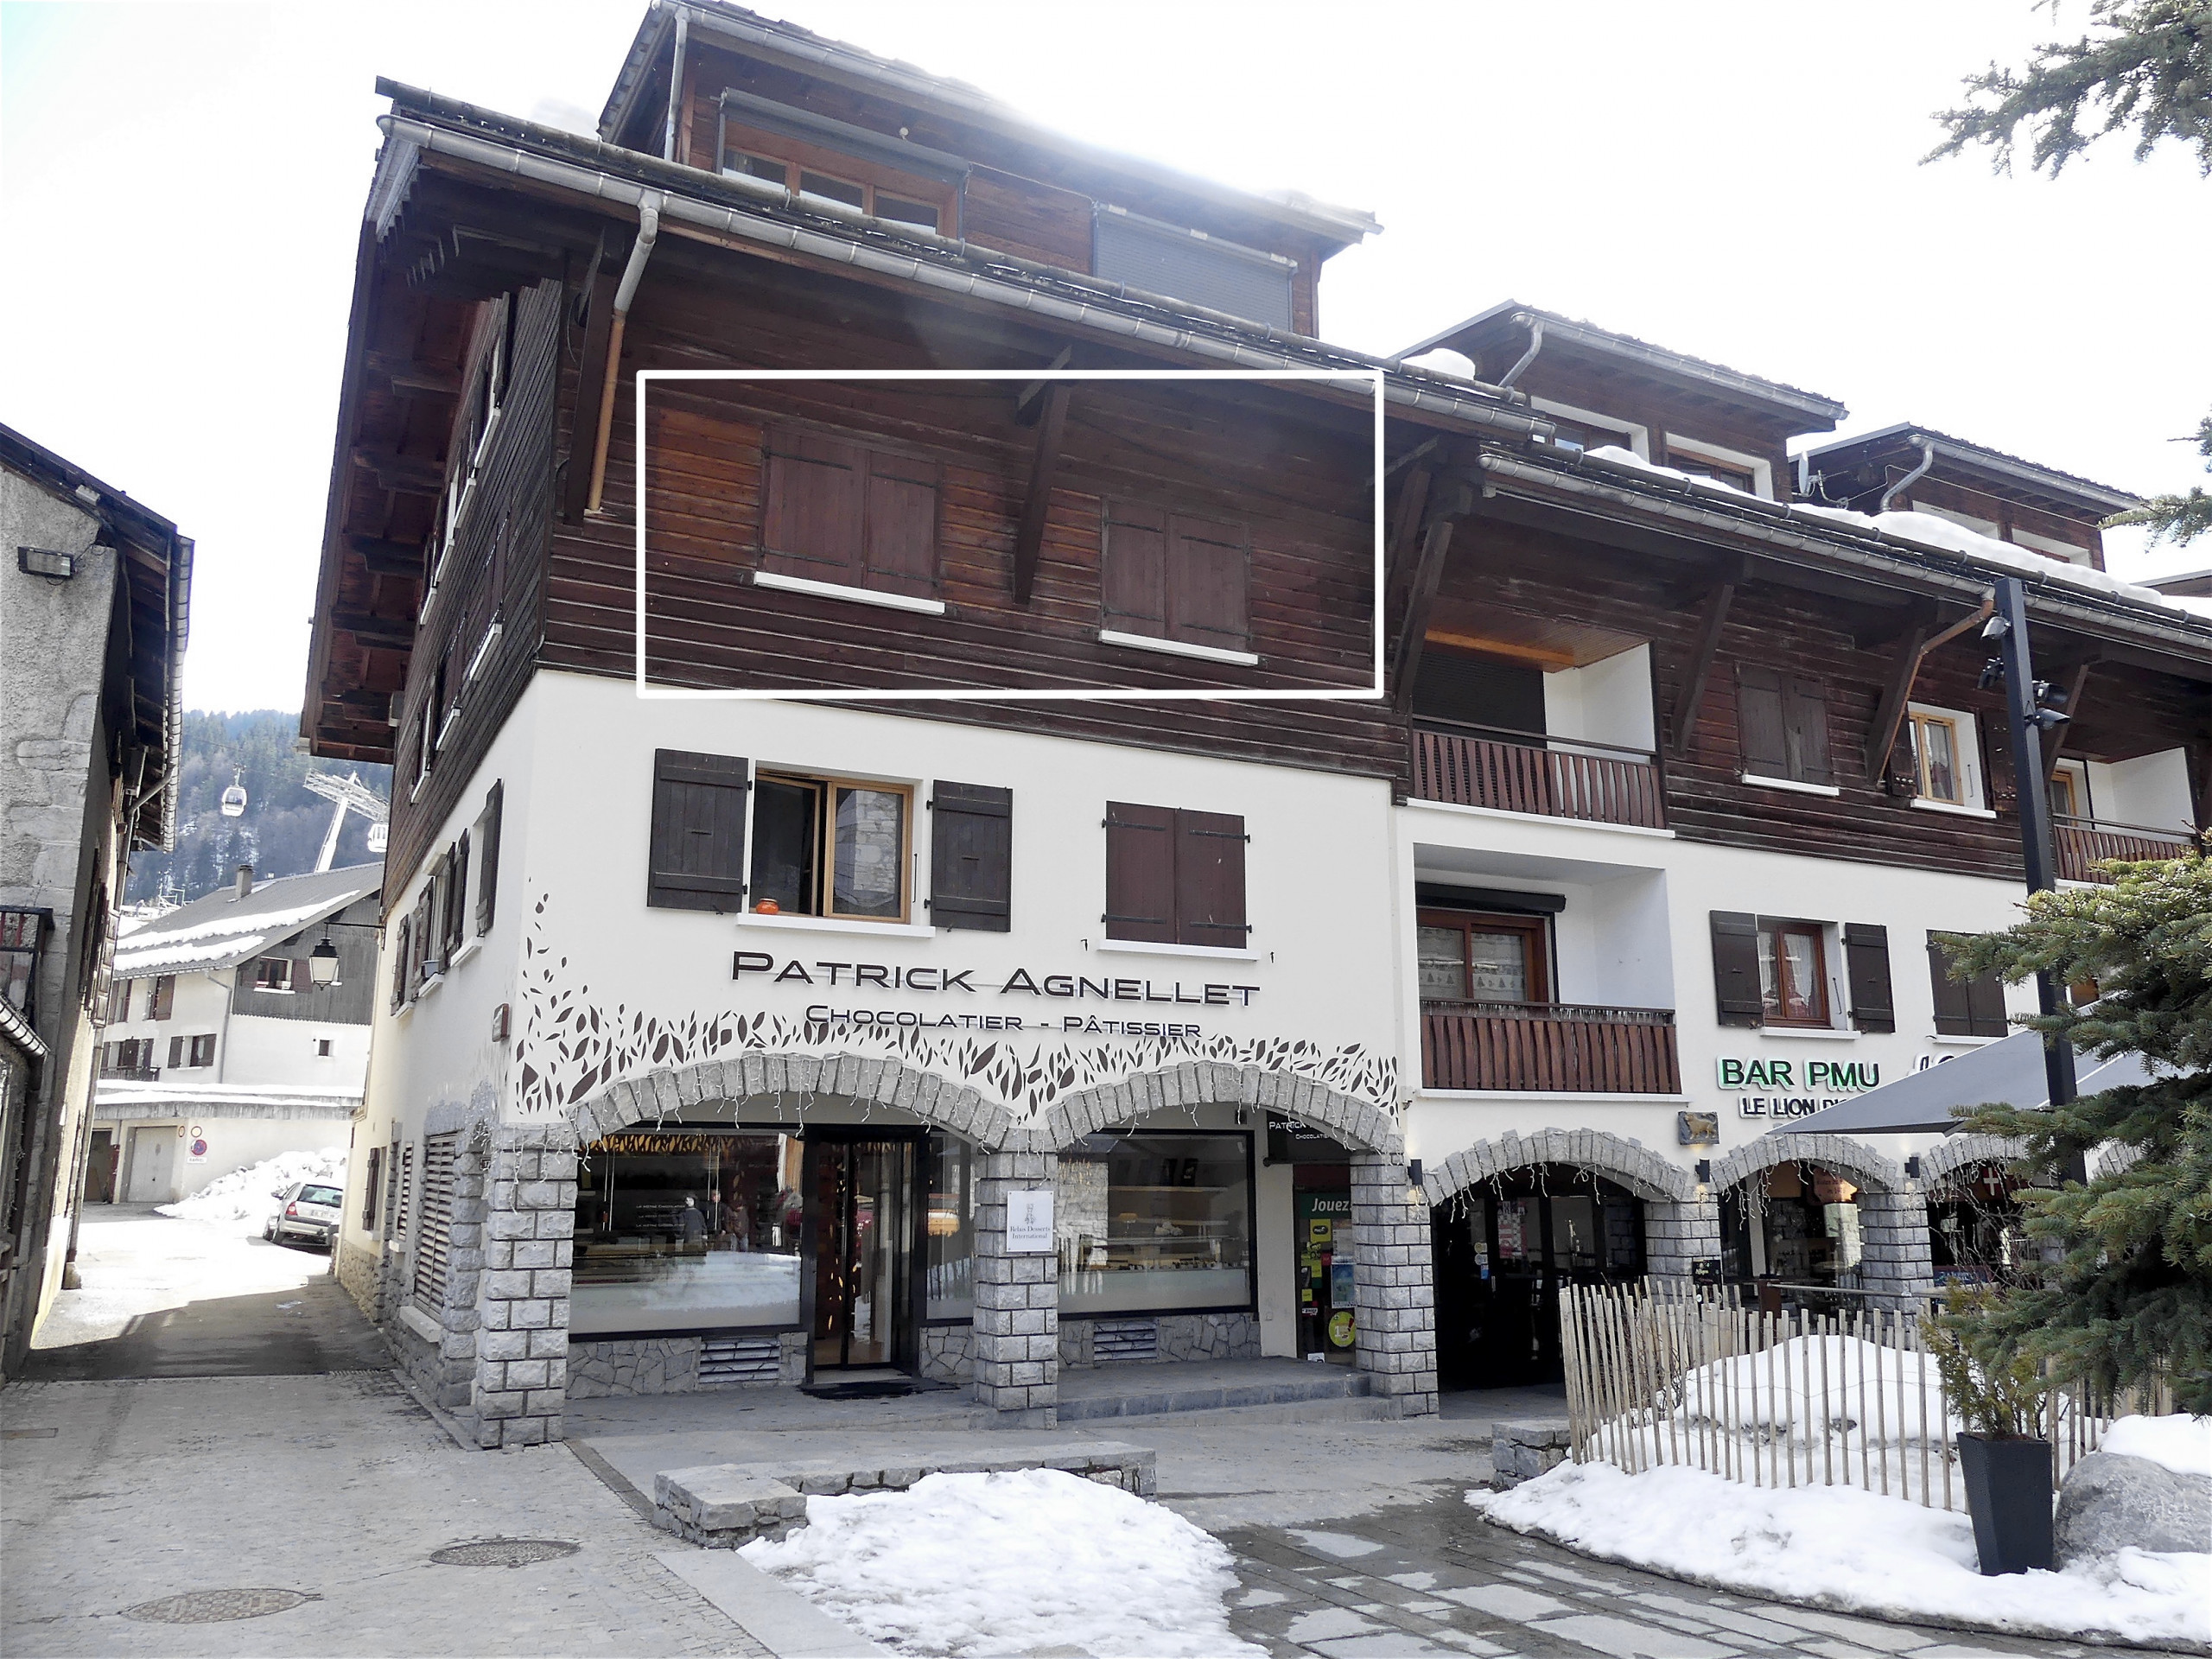 in La Clusaz - Caprice 4 - Apartment for 4 people in the village